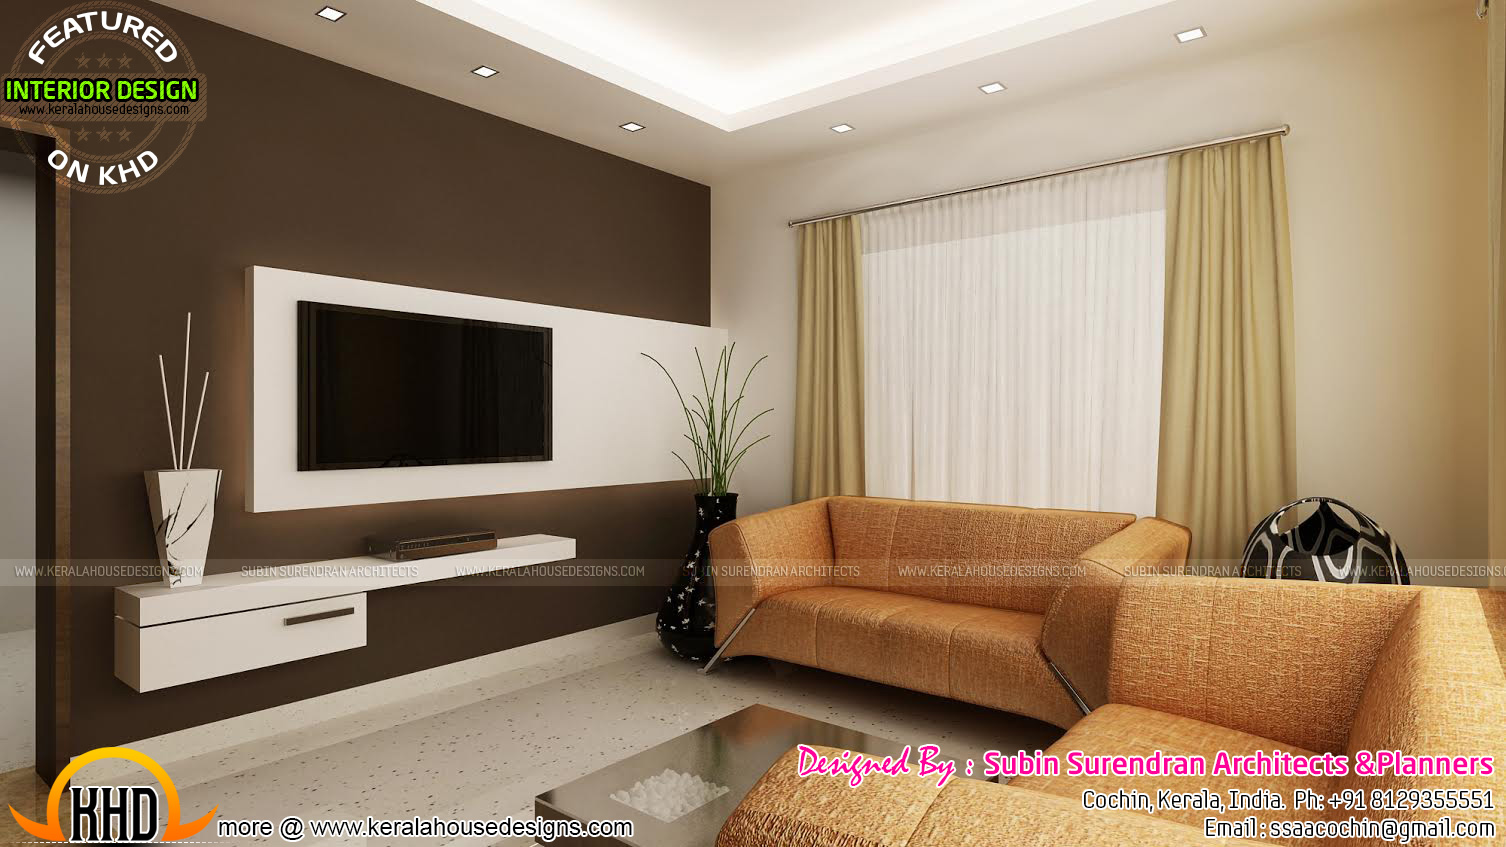 Living rooms modern kitchen interiors in kerala kerala for Interior decorating ideas for living room pictures